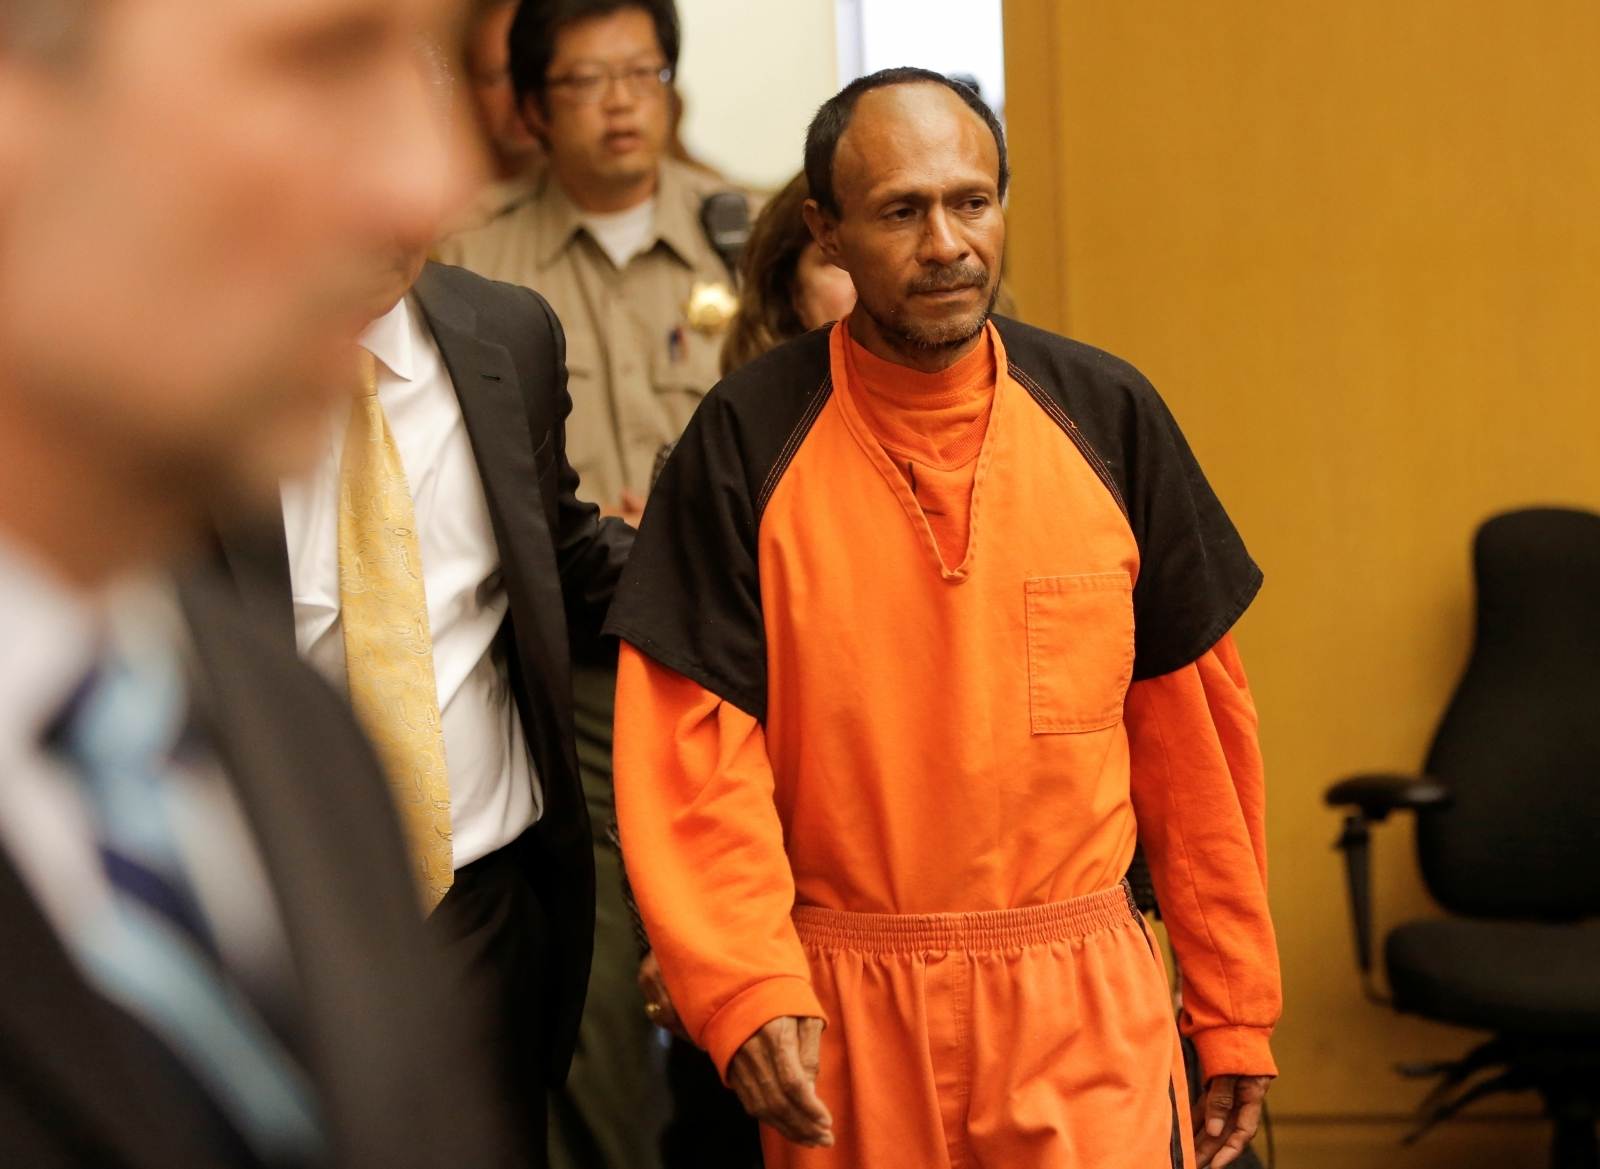 Jury Finds Illegal Immigrant Not Guilty in Killing of Kate Steinle